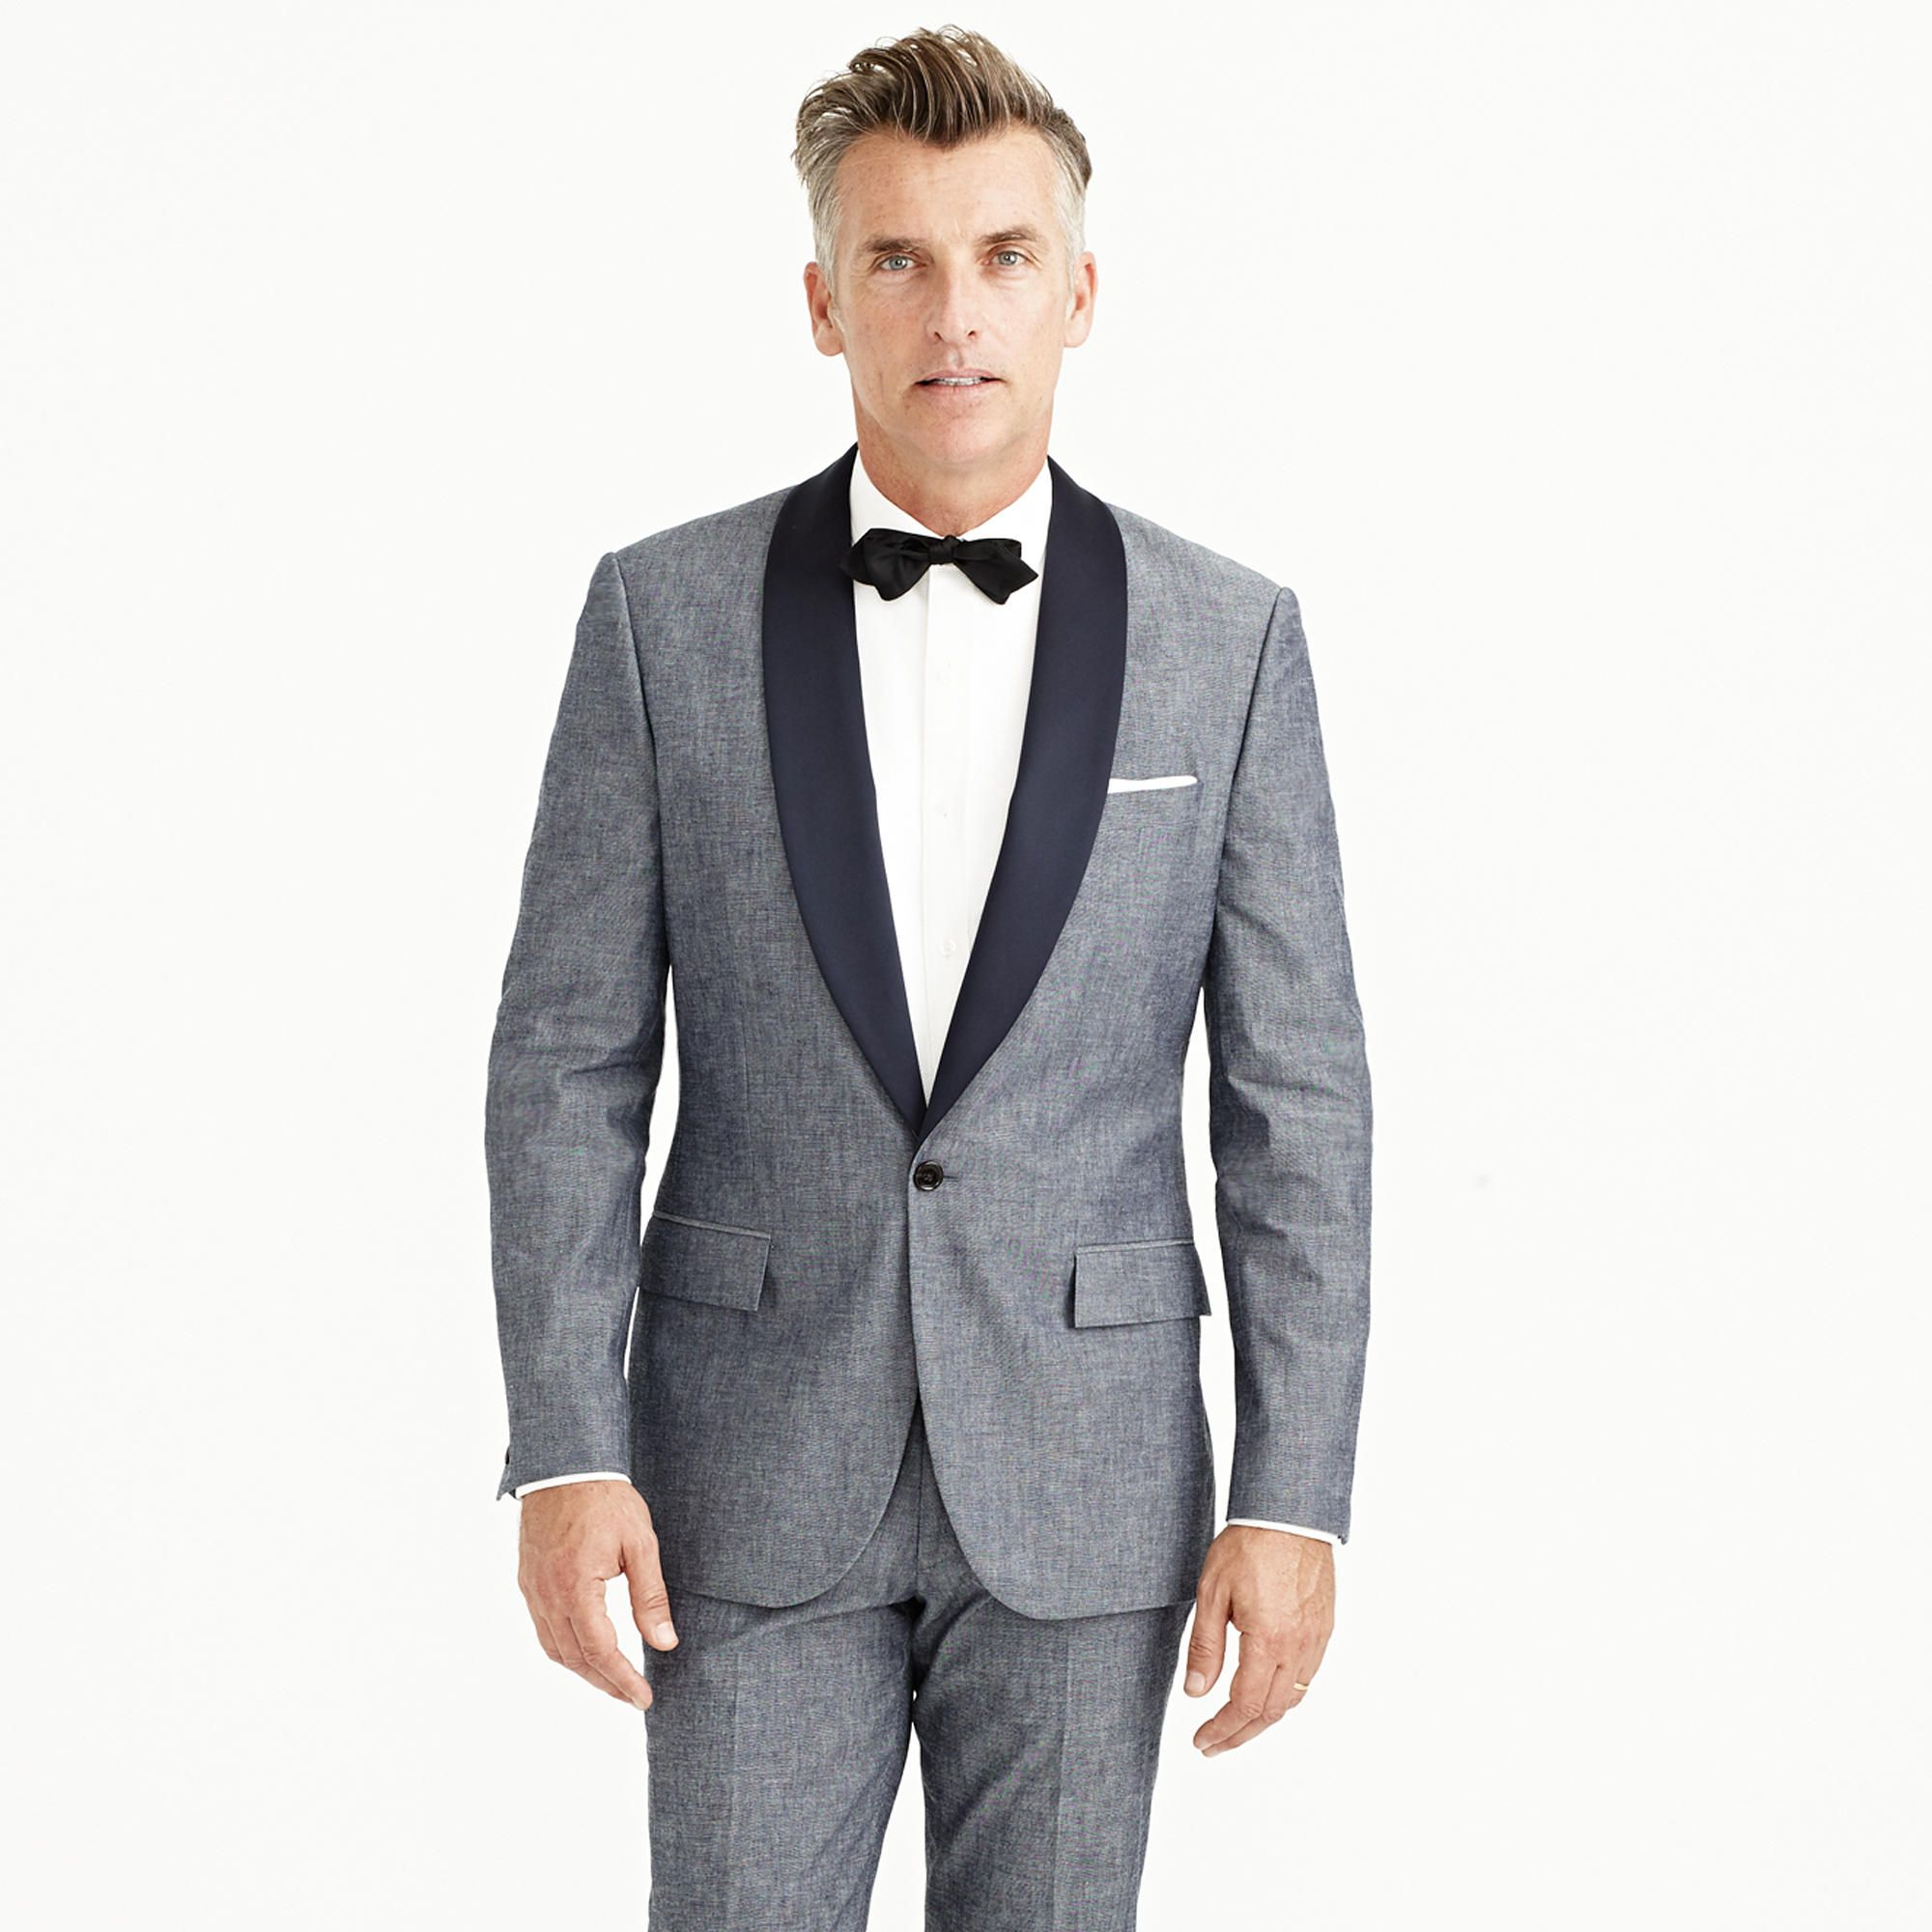 057f21938c9 Ludlow tuxedo jacket in Japanese chambray - suits -Men- J.Crew ...